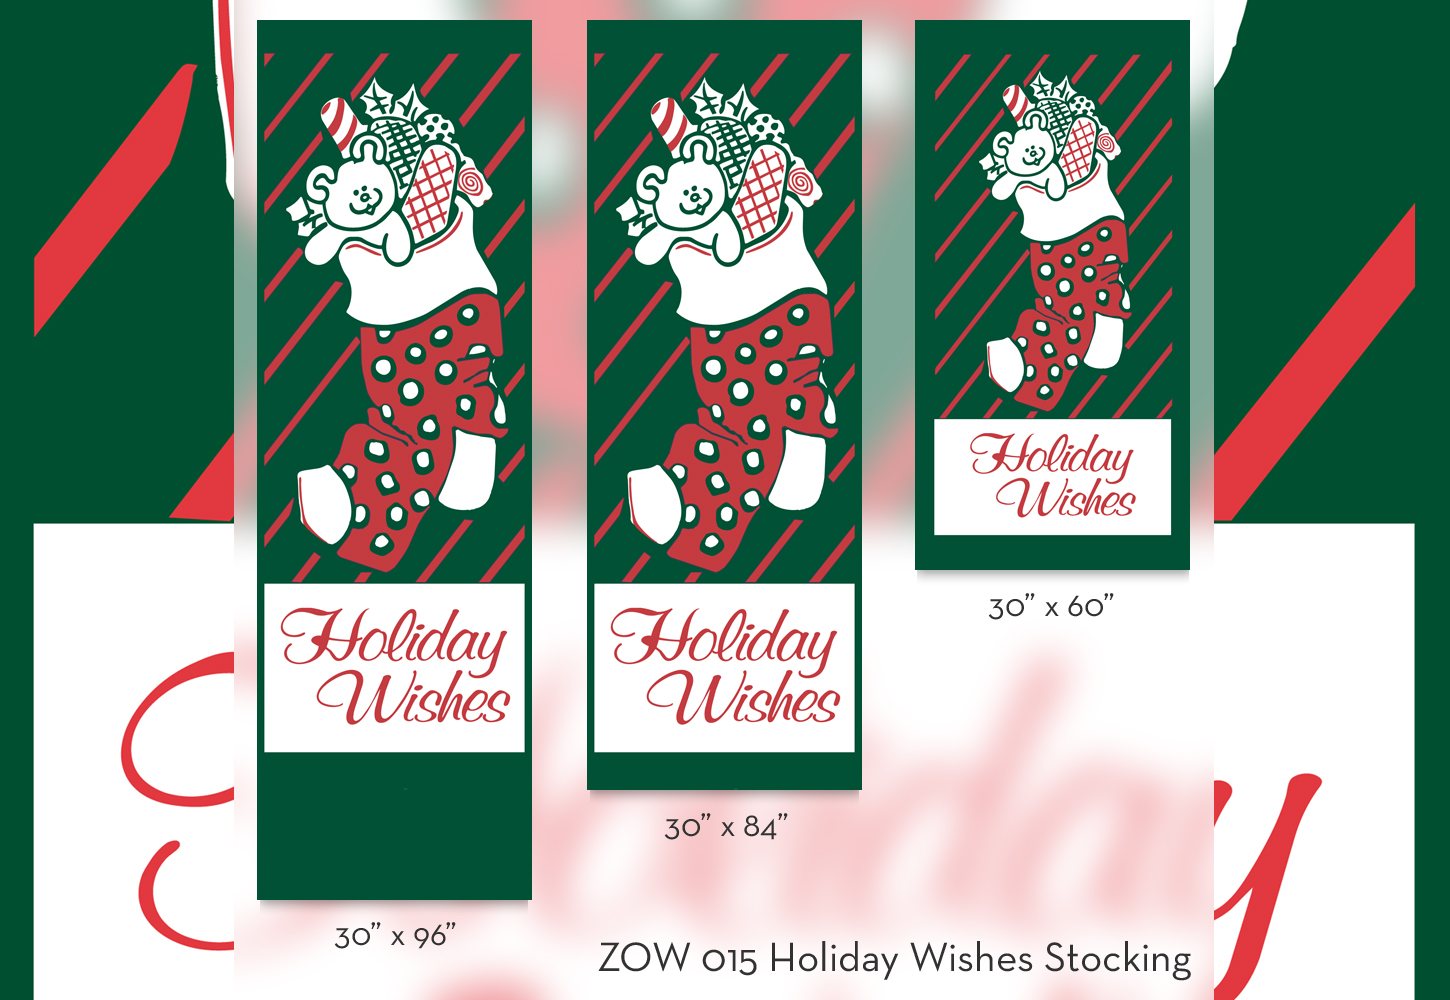 ZOW 015 Holiday Wishes Stocking